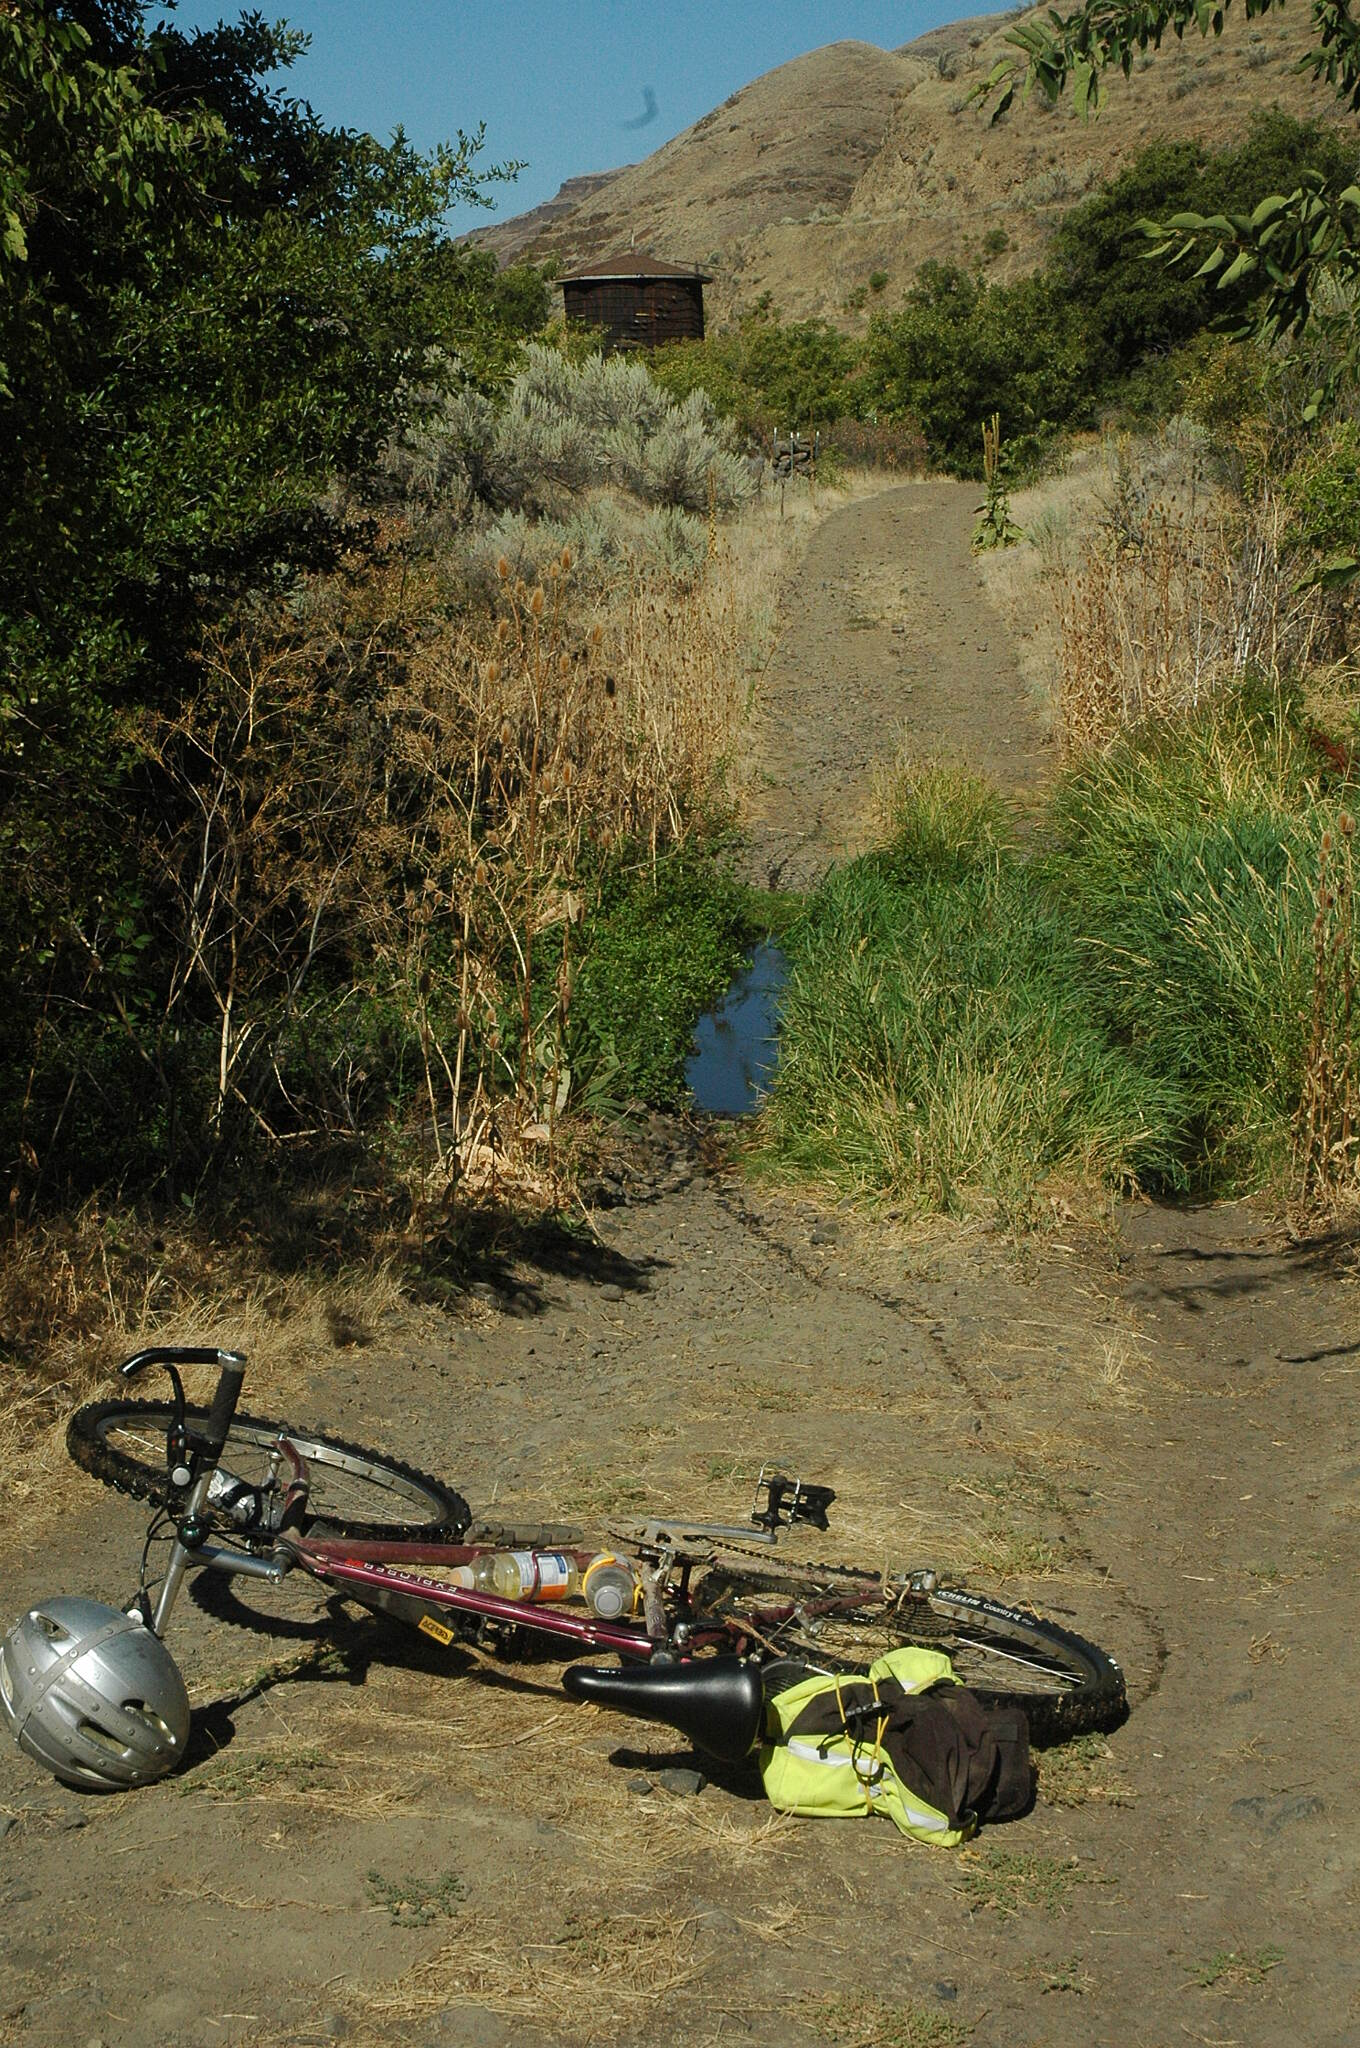 Deschutes River Railbed Trail Harris Ranch area Running water in August, lot's of wildlife too, what a wonderful ride